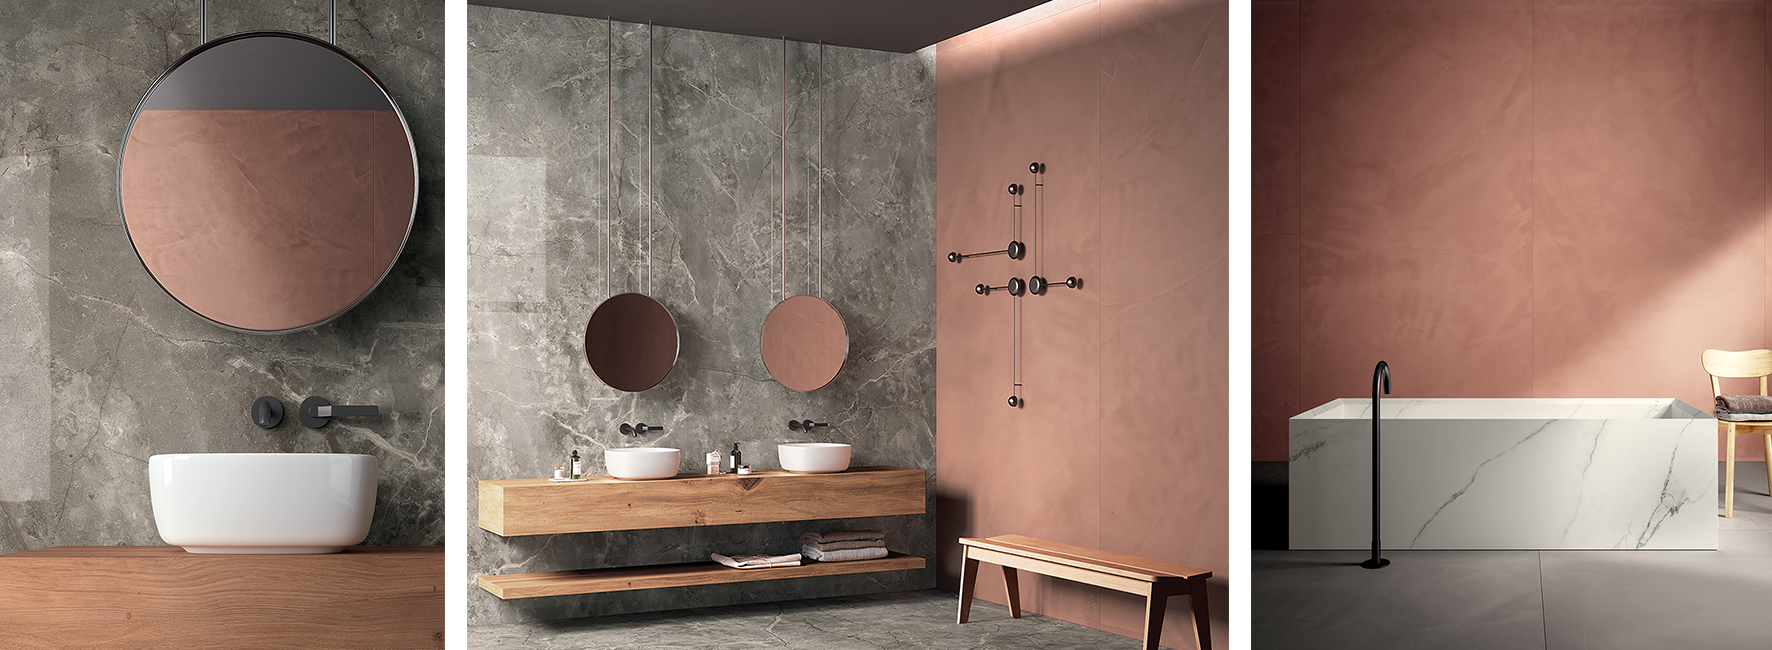 MyTop by Fondovalle: Large Format Design Surfaces